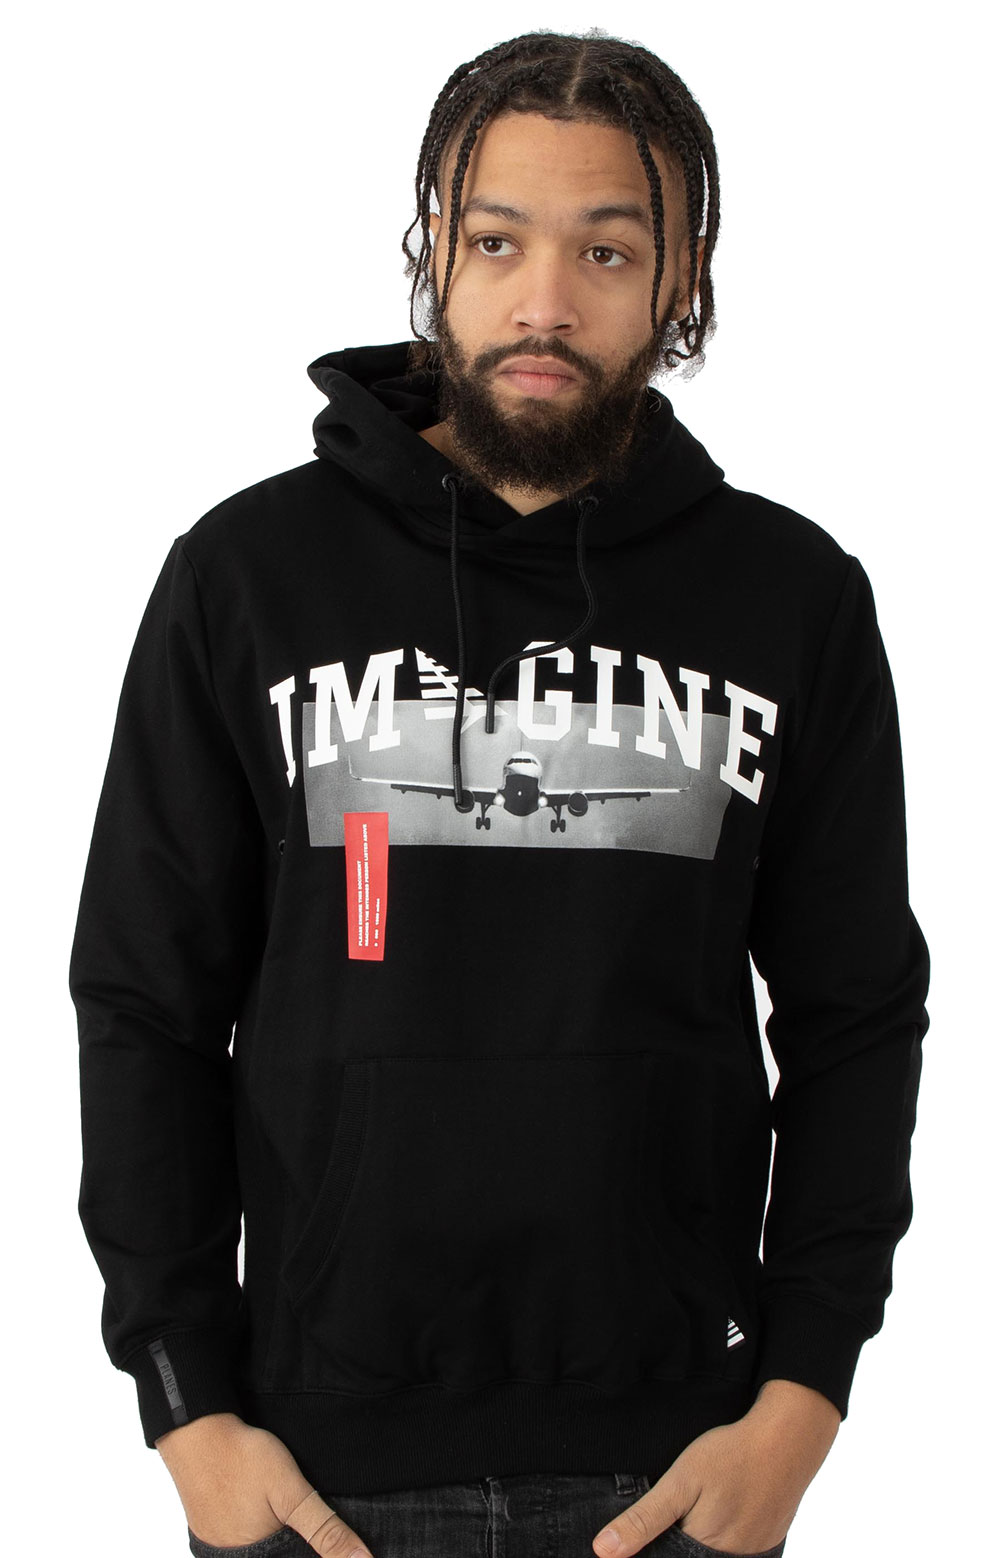 Passport Holder Pullover Hoodie - Black